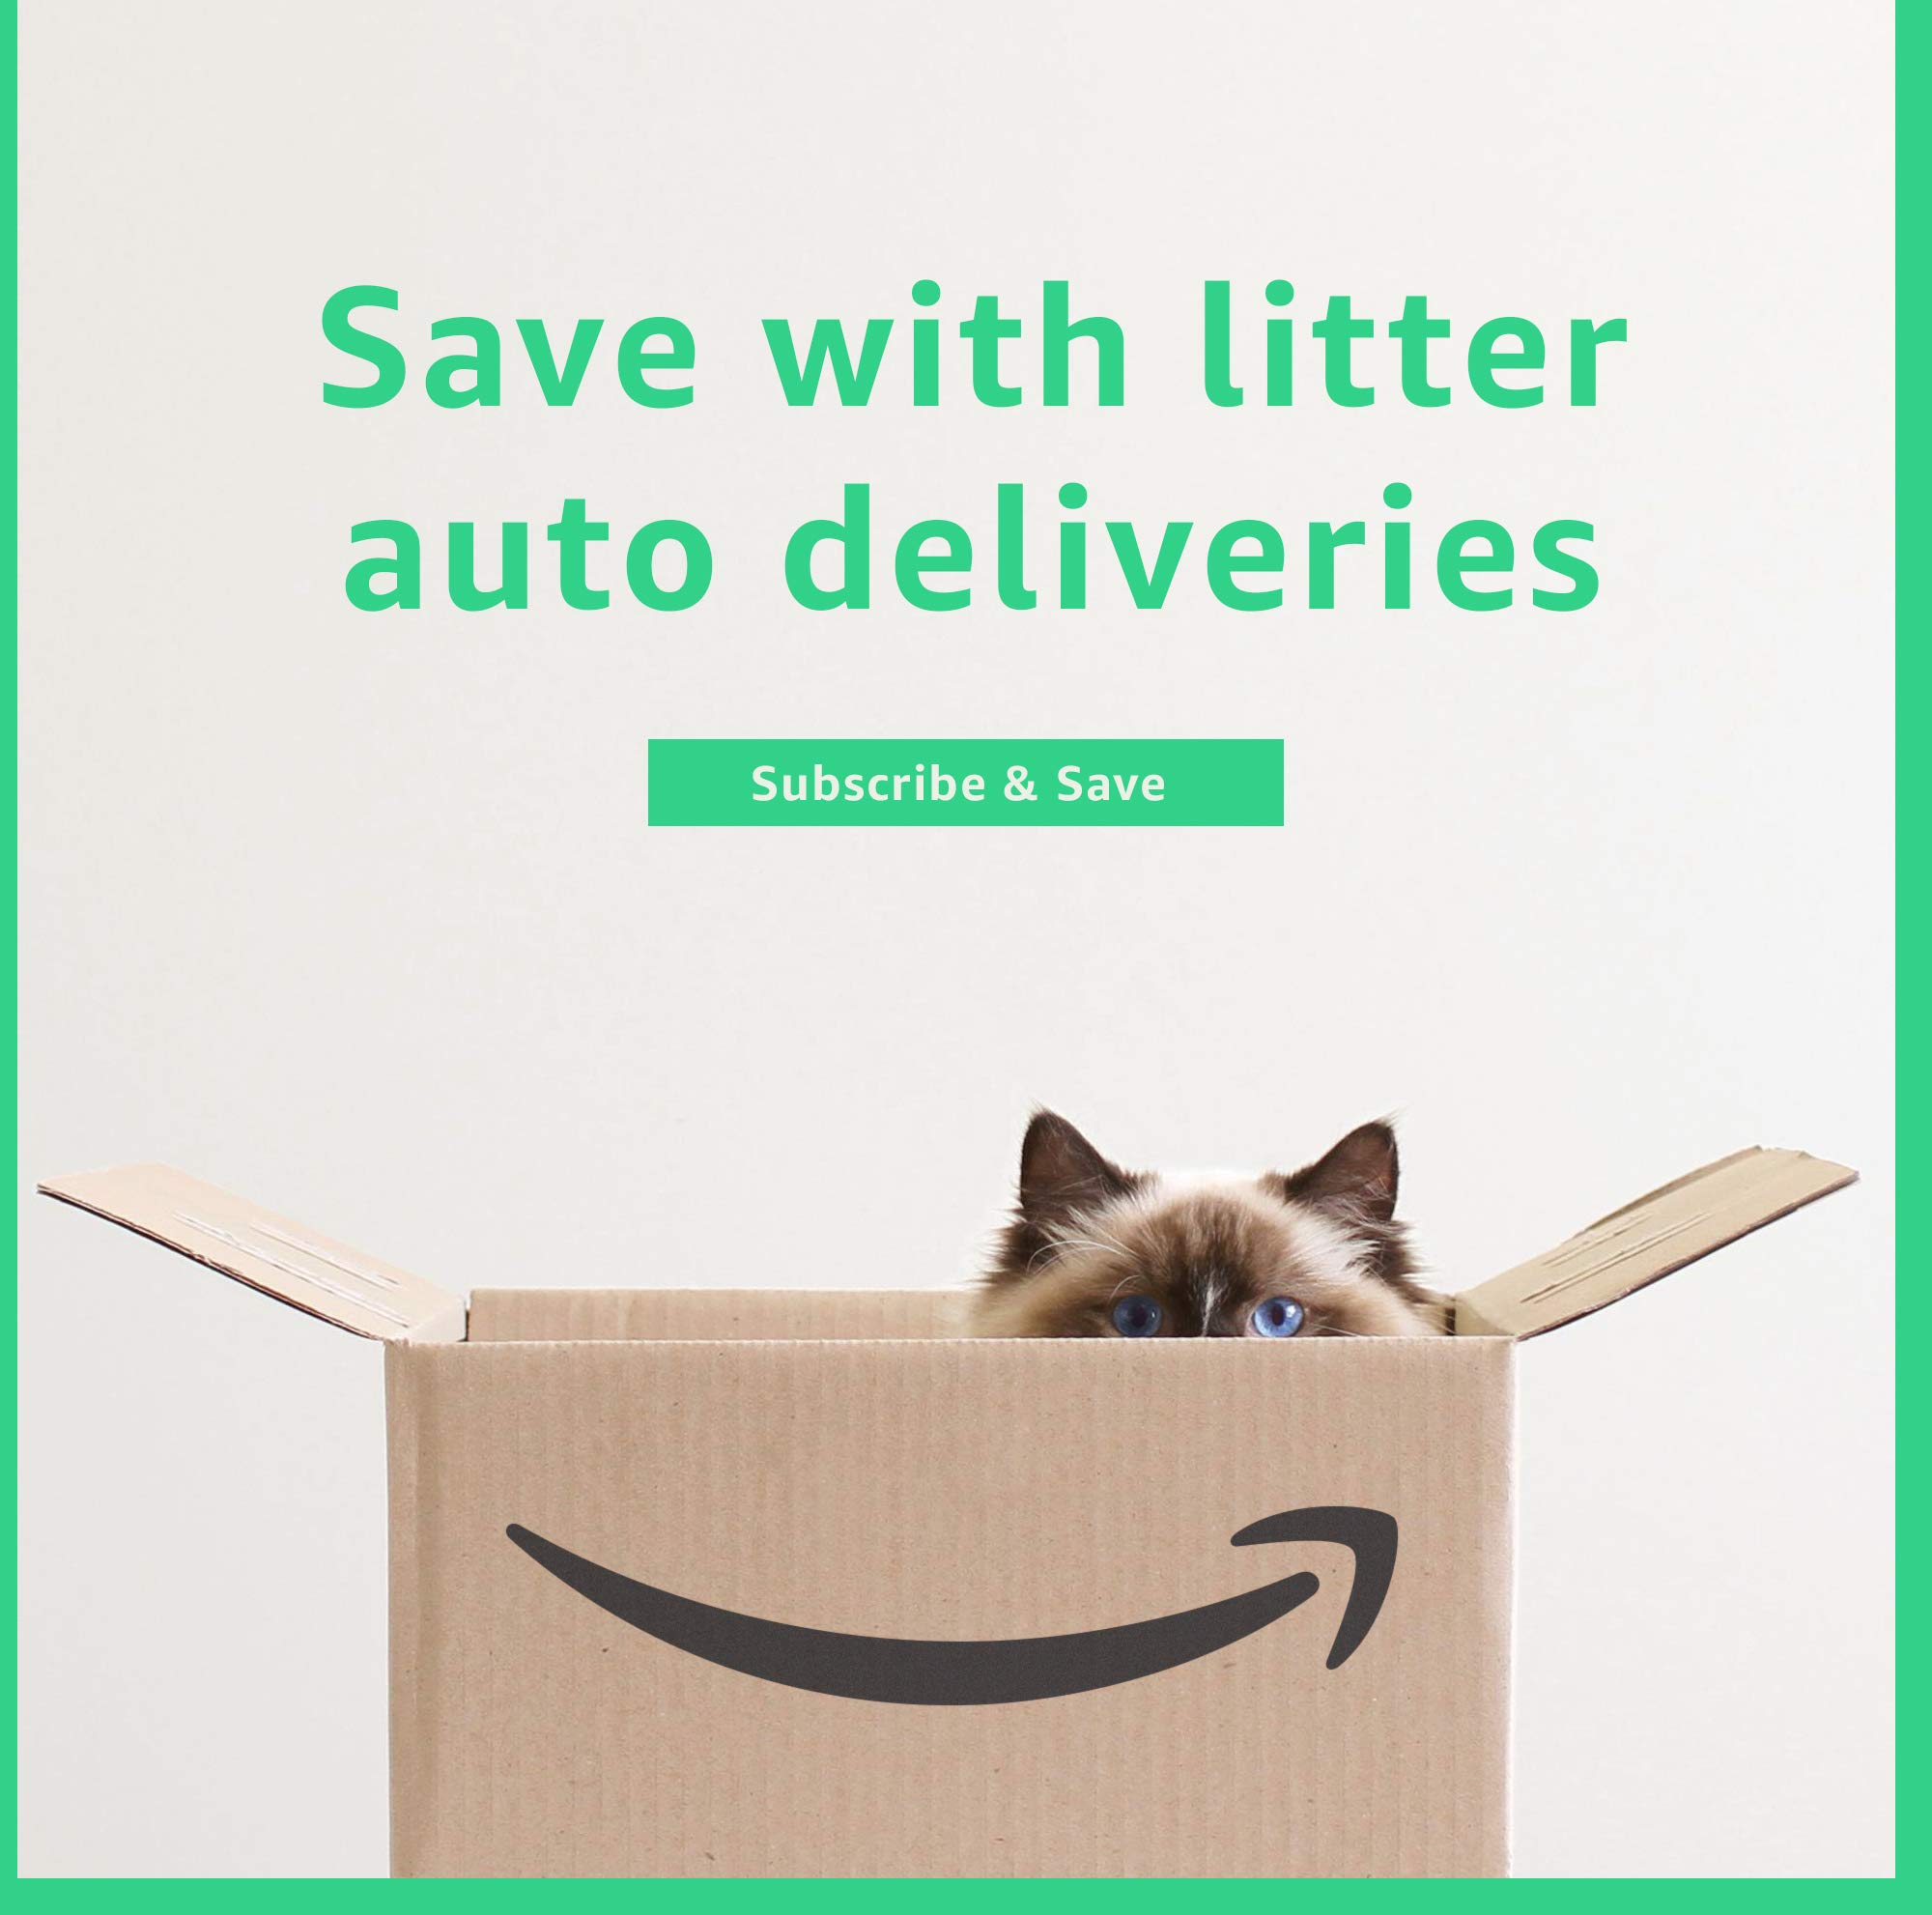 Save with litter auto deliveries